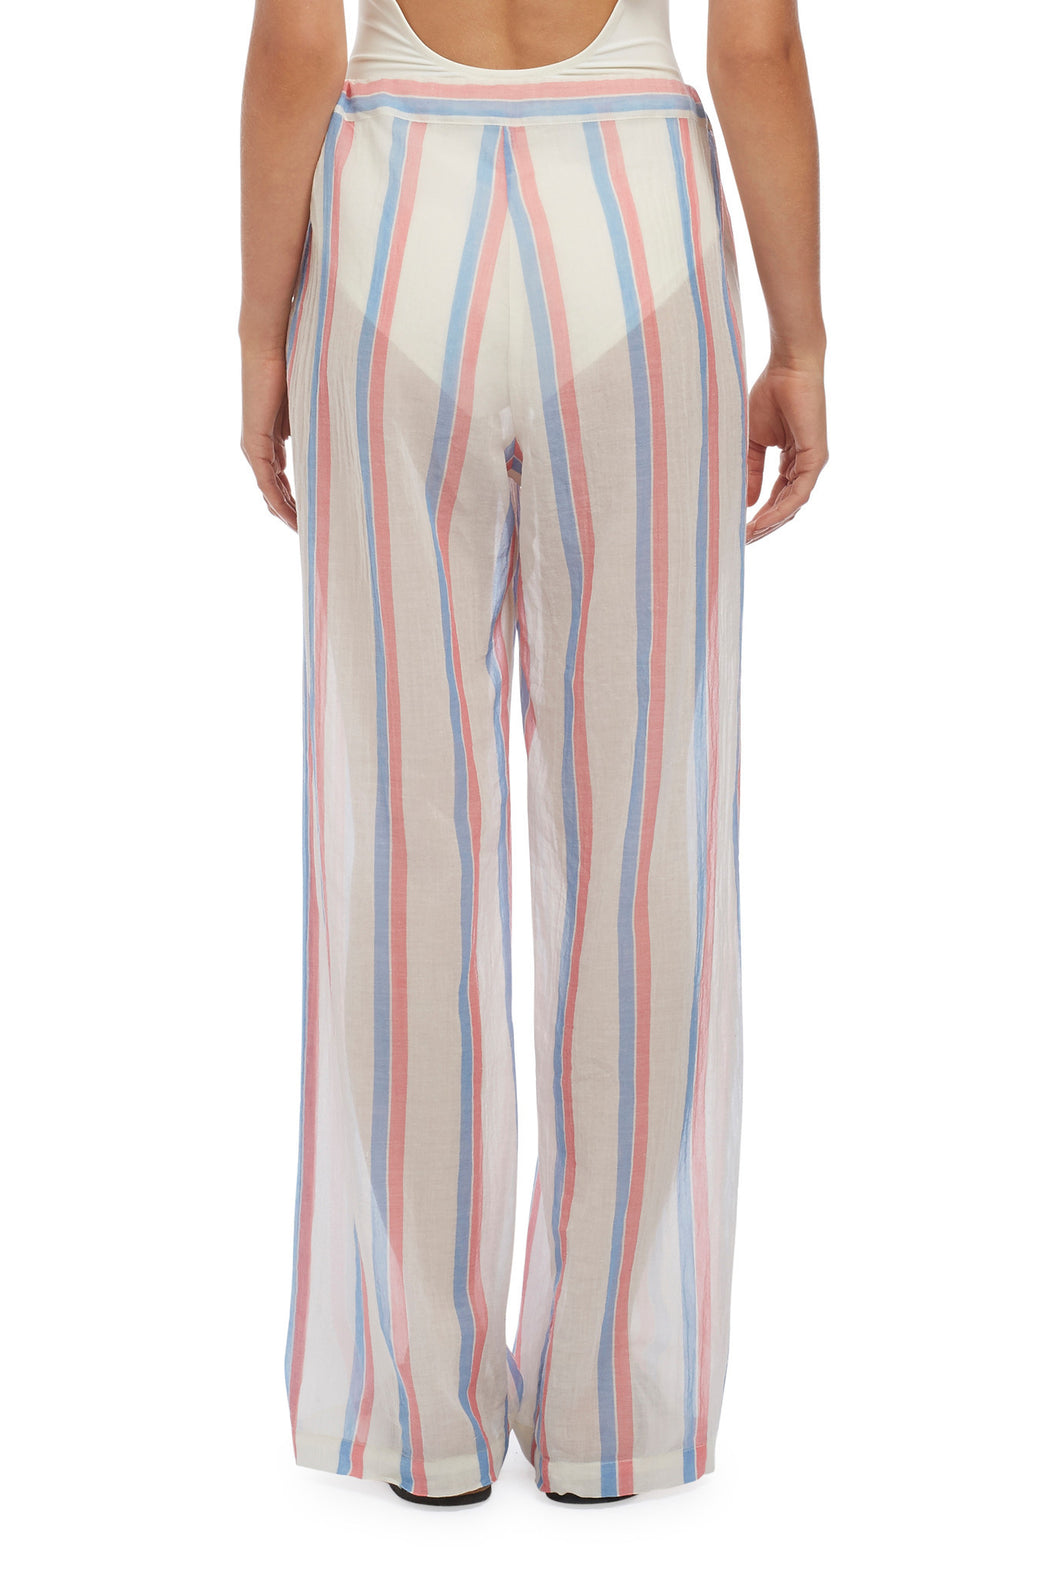 Woven Drawstring Pant x Solid & Striped